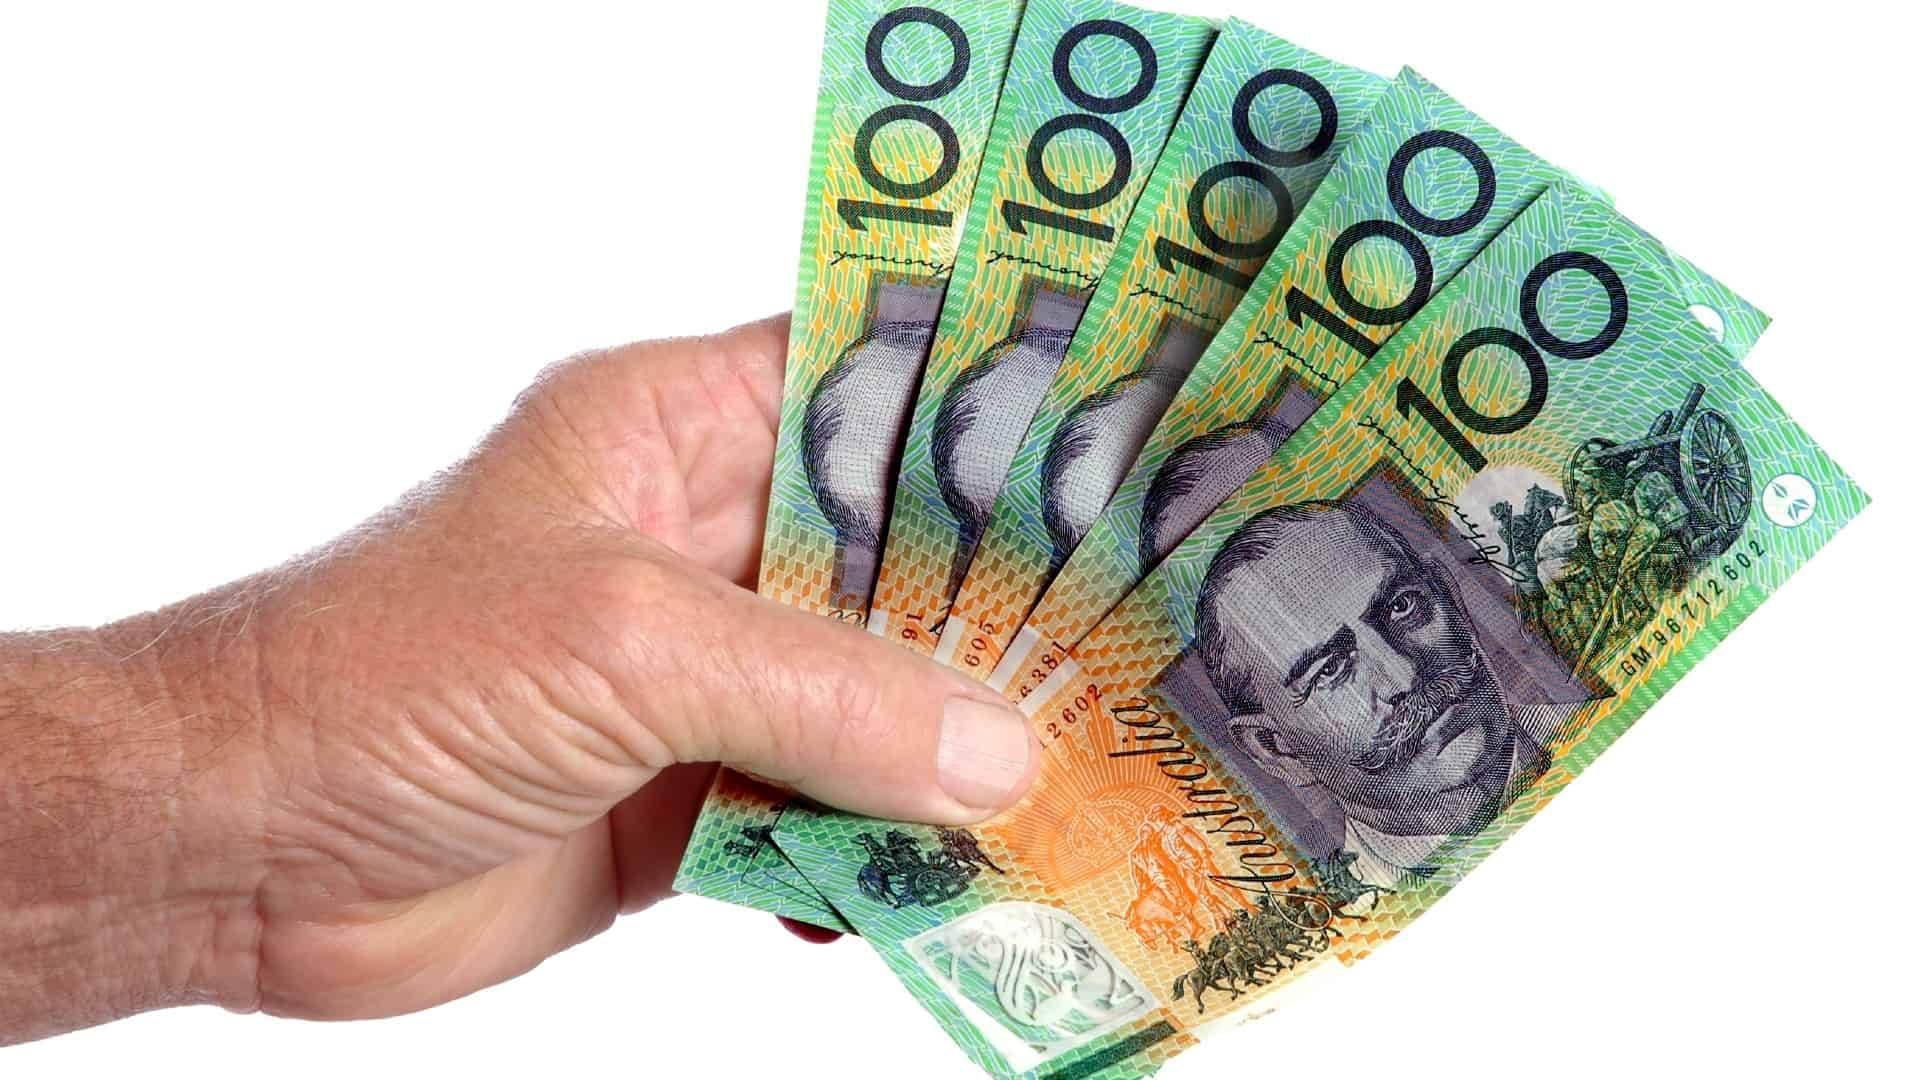 A handful of Australian $100 notes, indicating a cash position